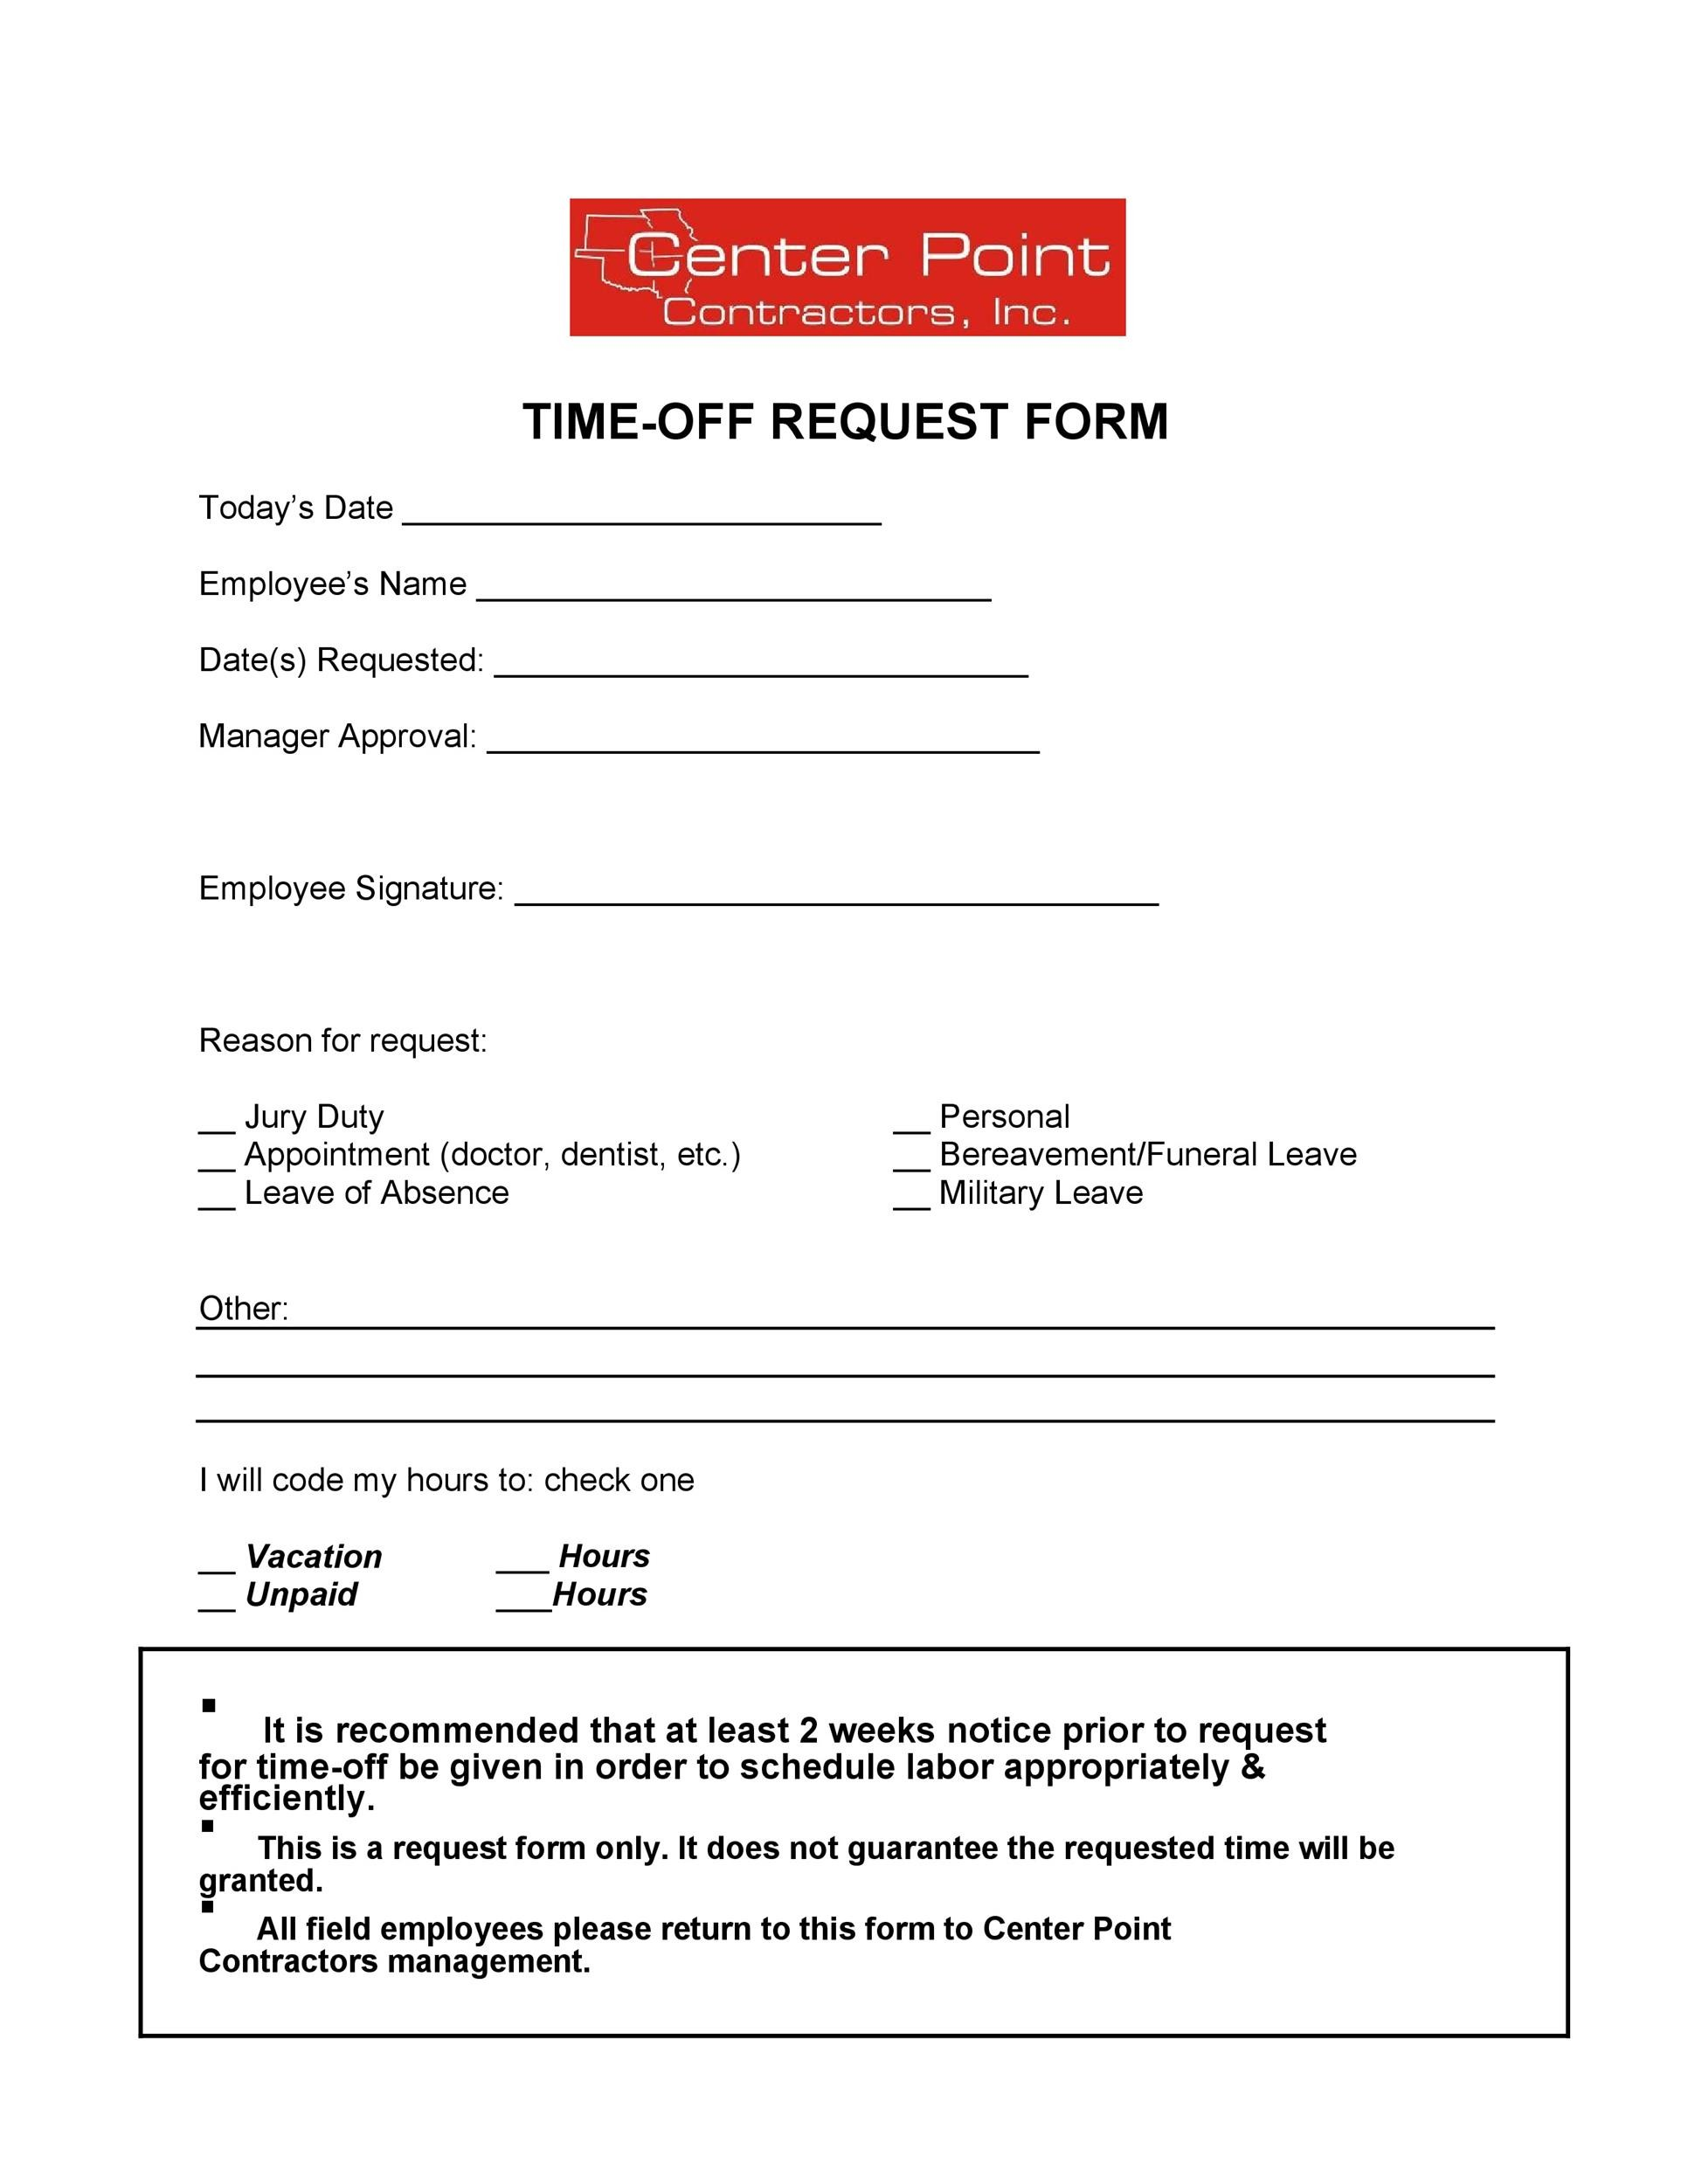 Free time off request form template 12